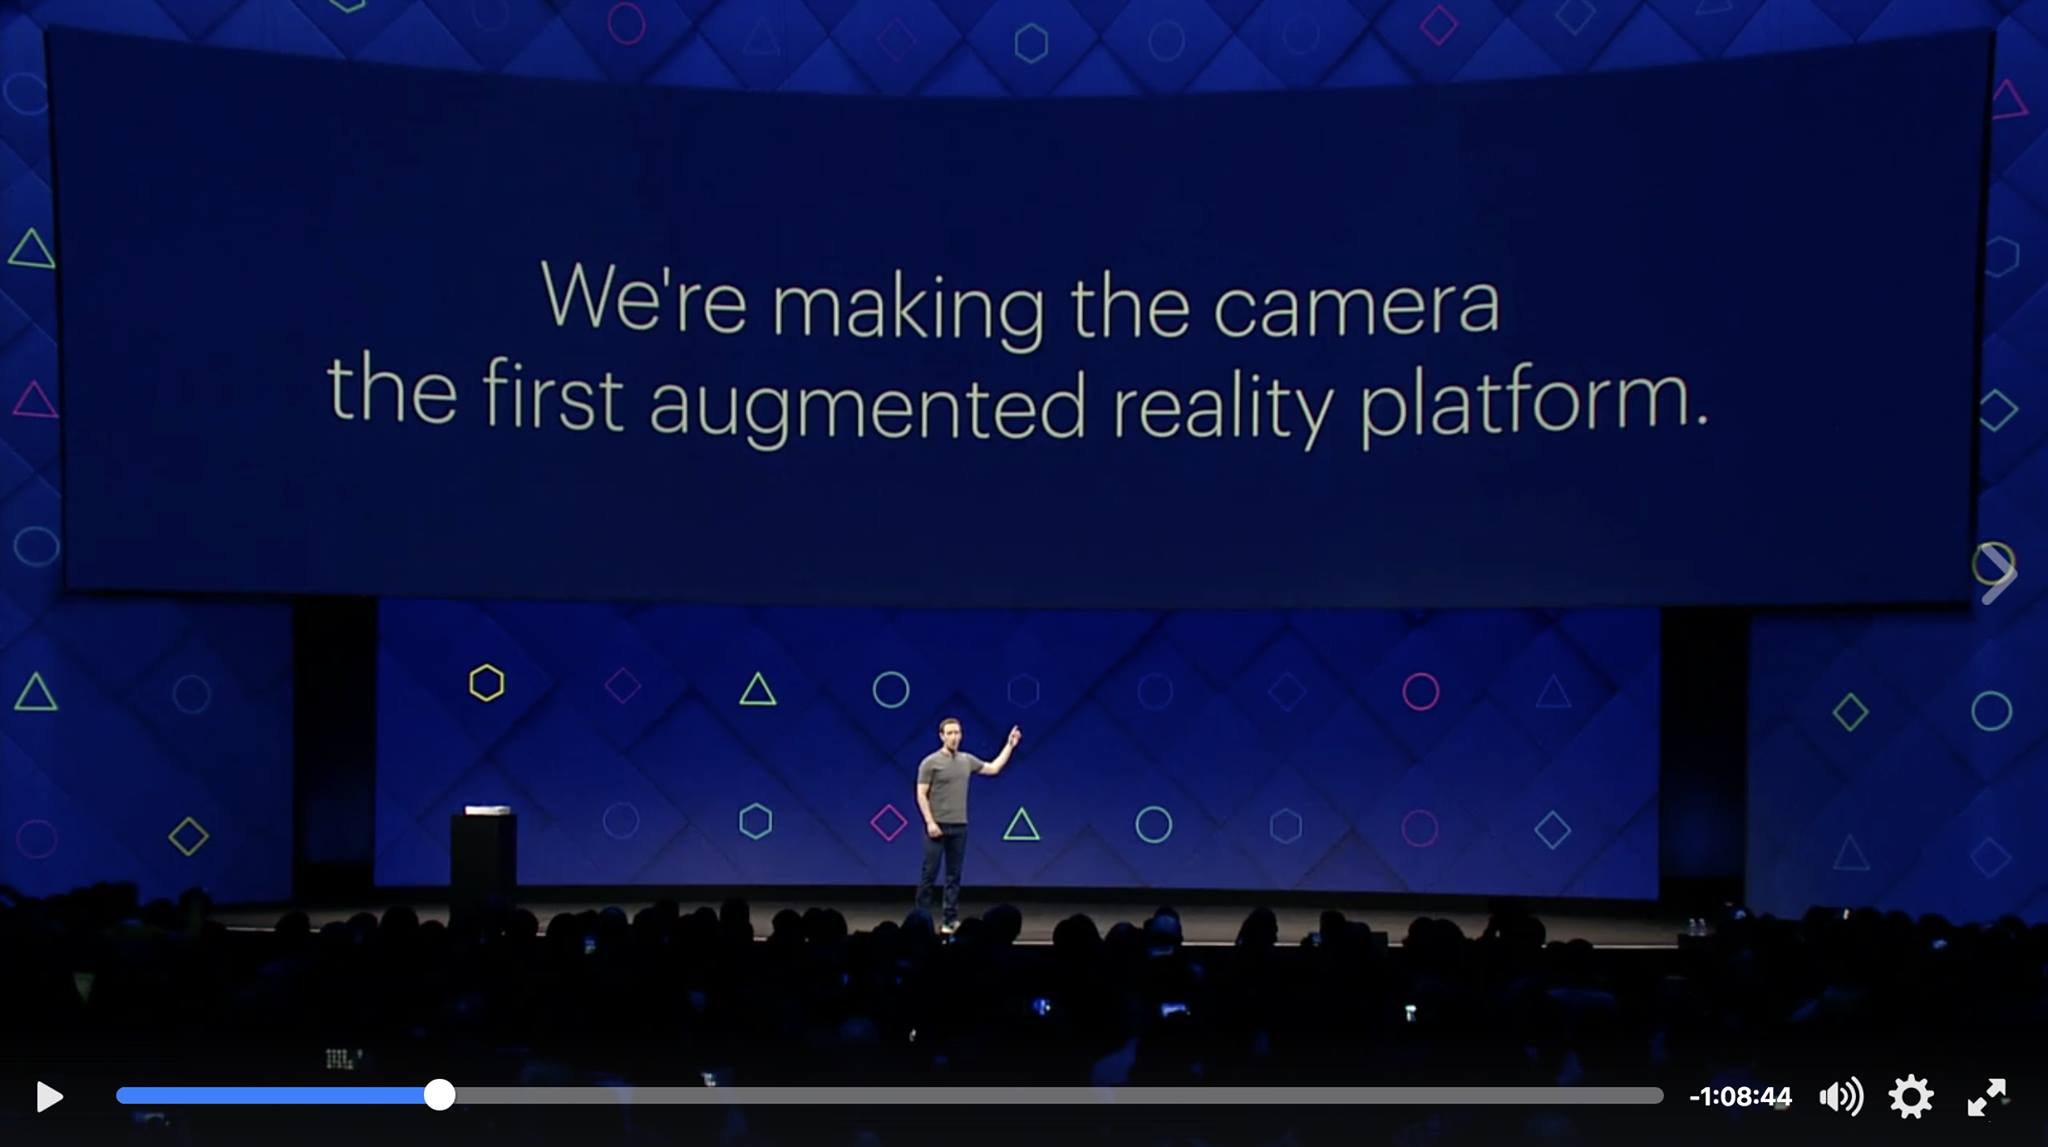 Mark Zuckerberg - Facebook Camera Platform